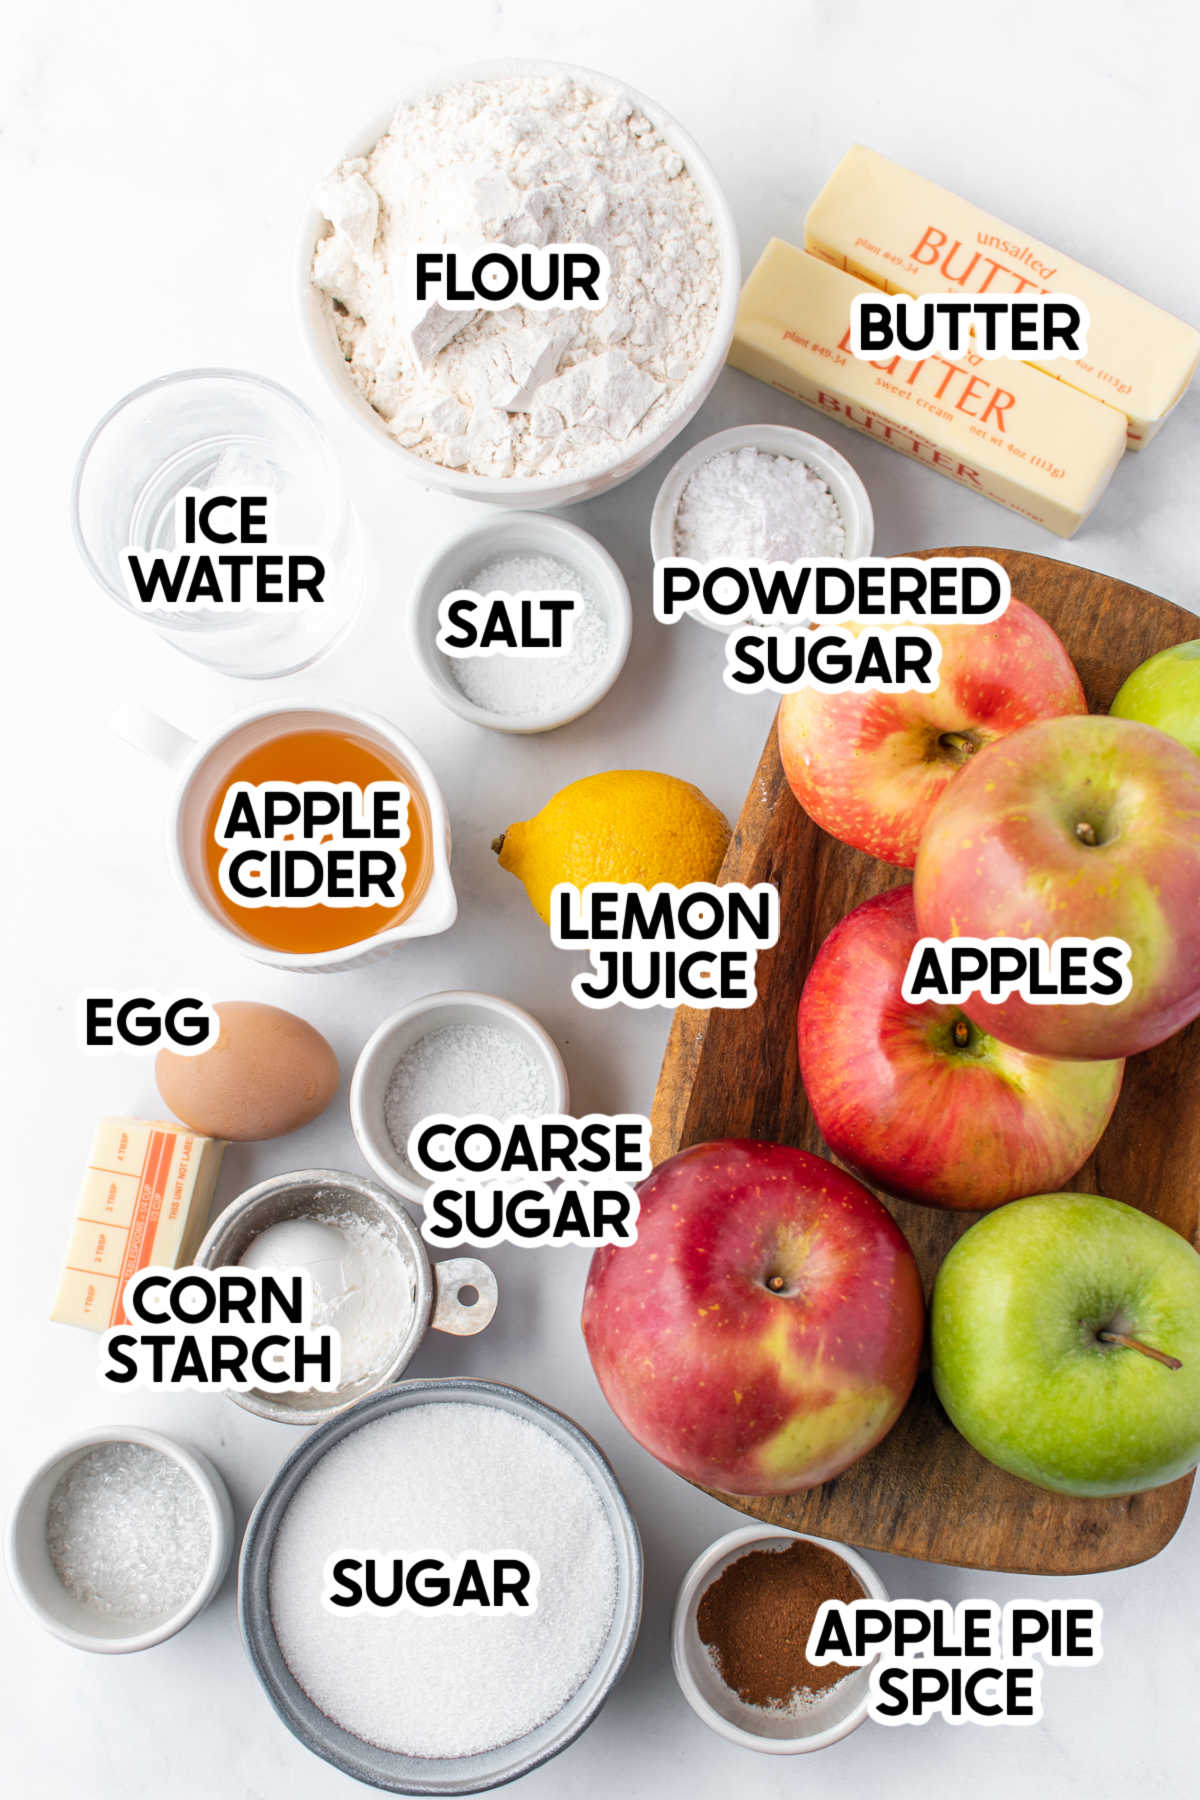 Ingredients for homemade apple pie with labels